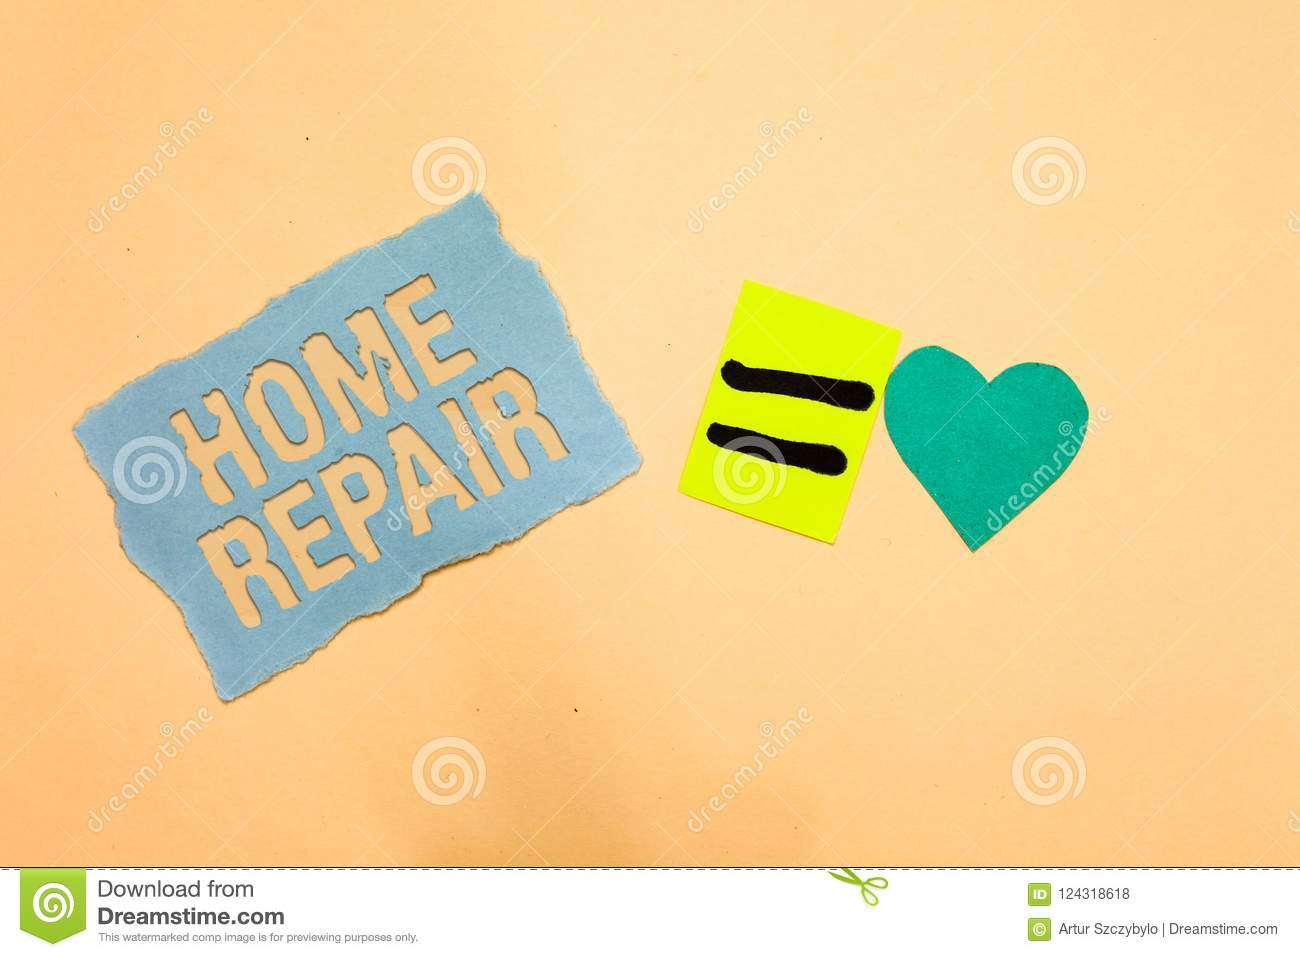 Writing note showing Home Repair. Business photo showcasing maintenance or improving your own house by yourself using tools Blue p